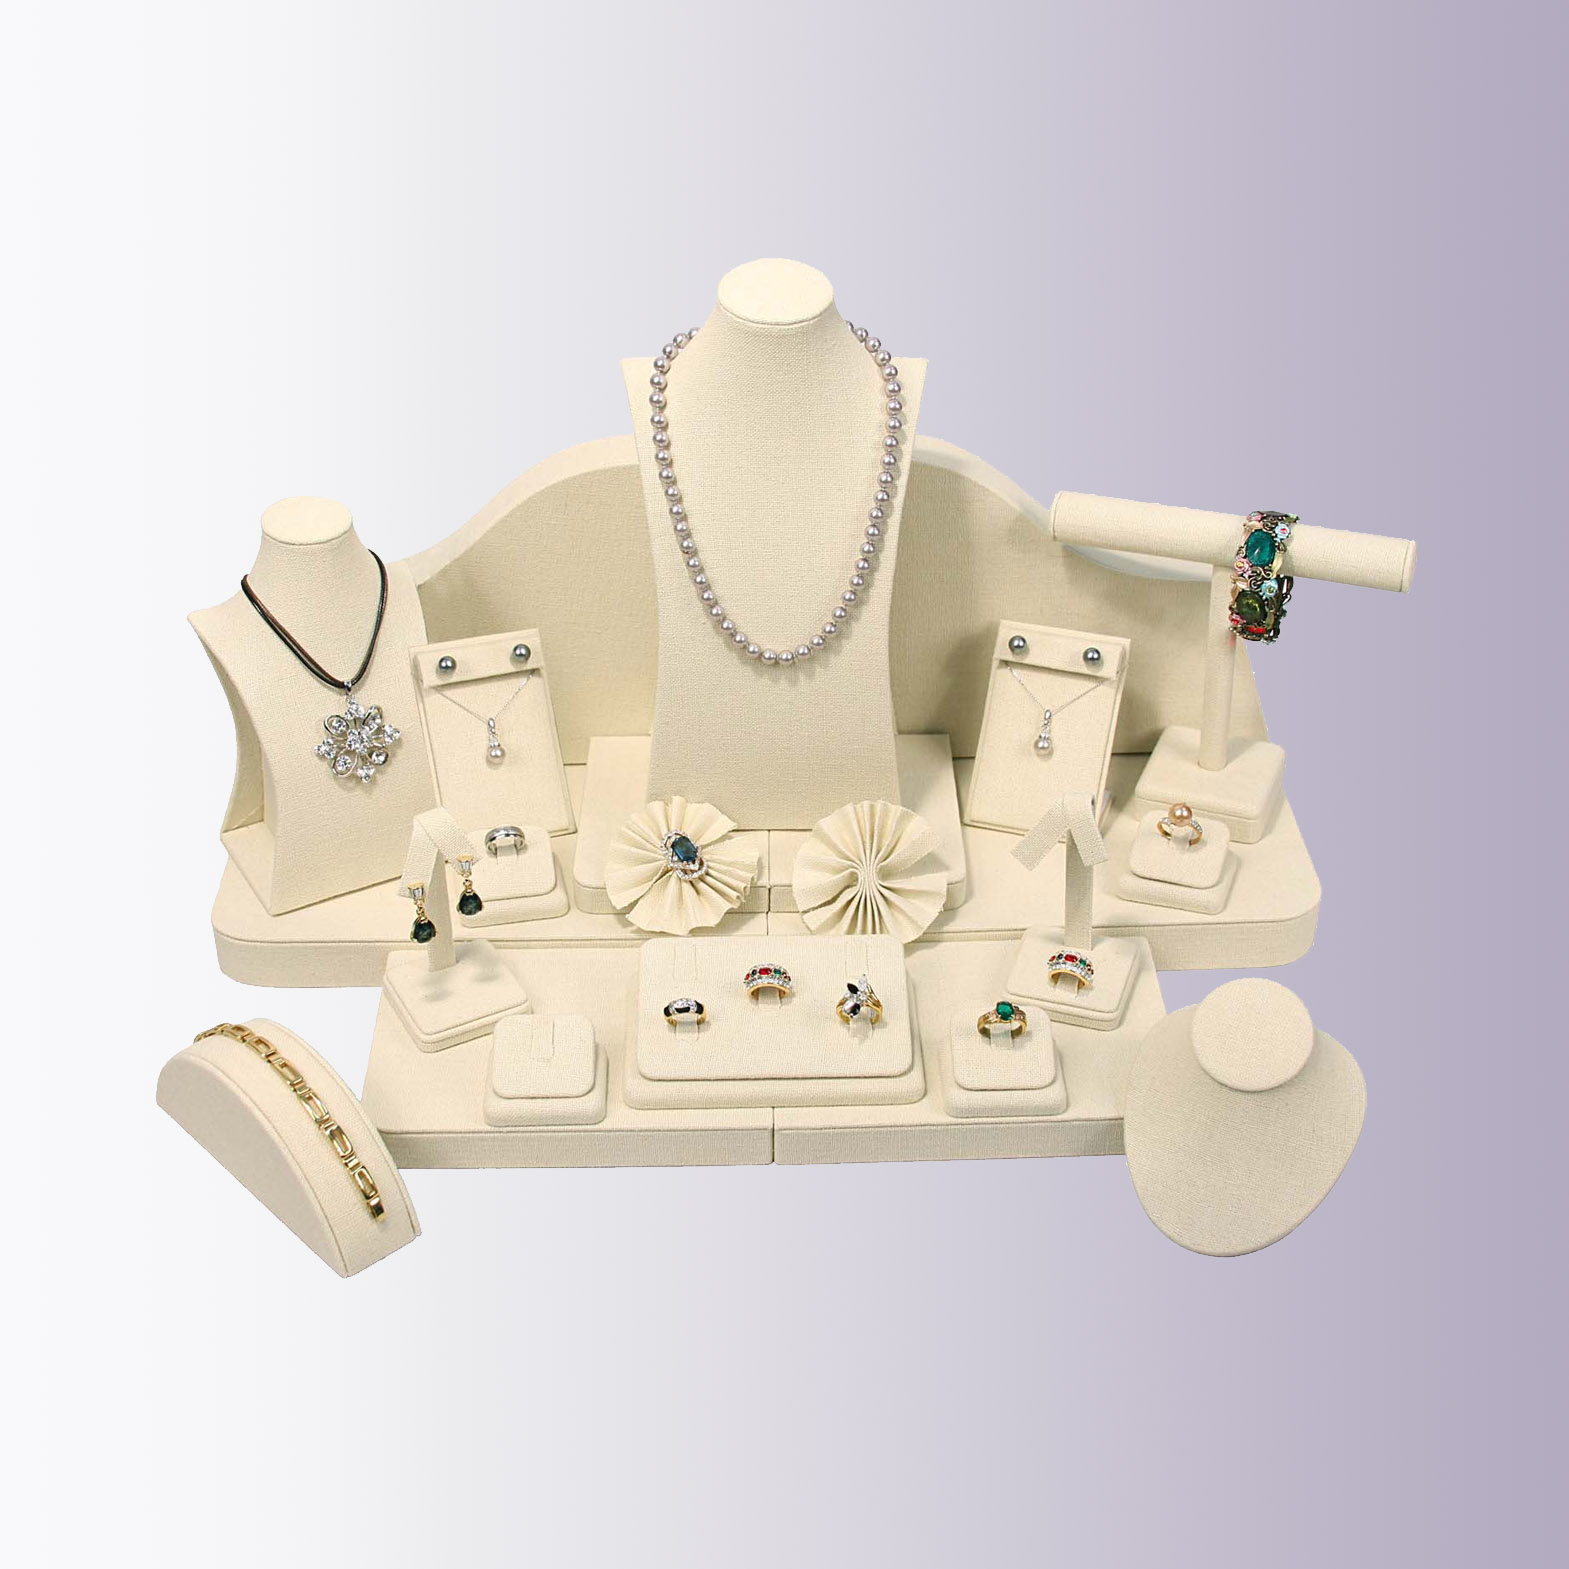 GMT Leatherette Jewelry Display Set